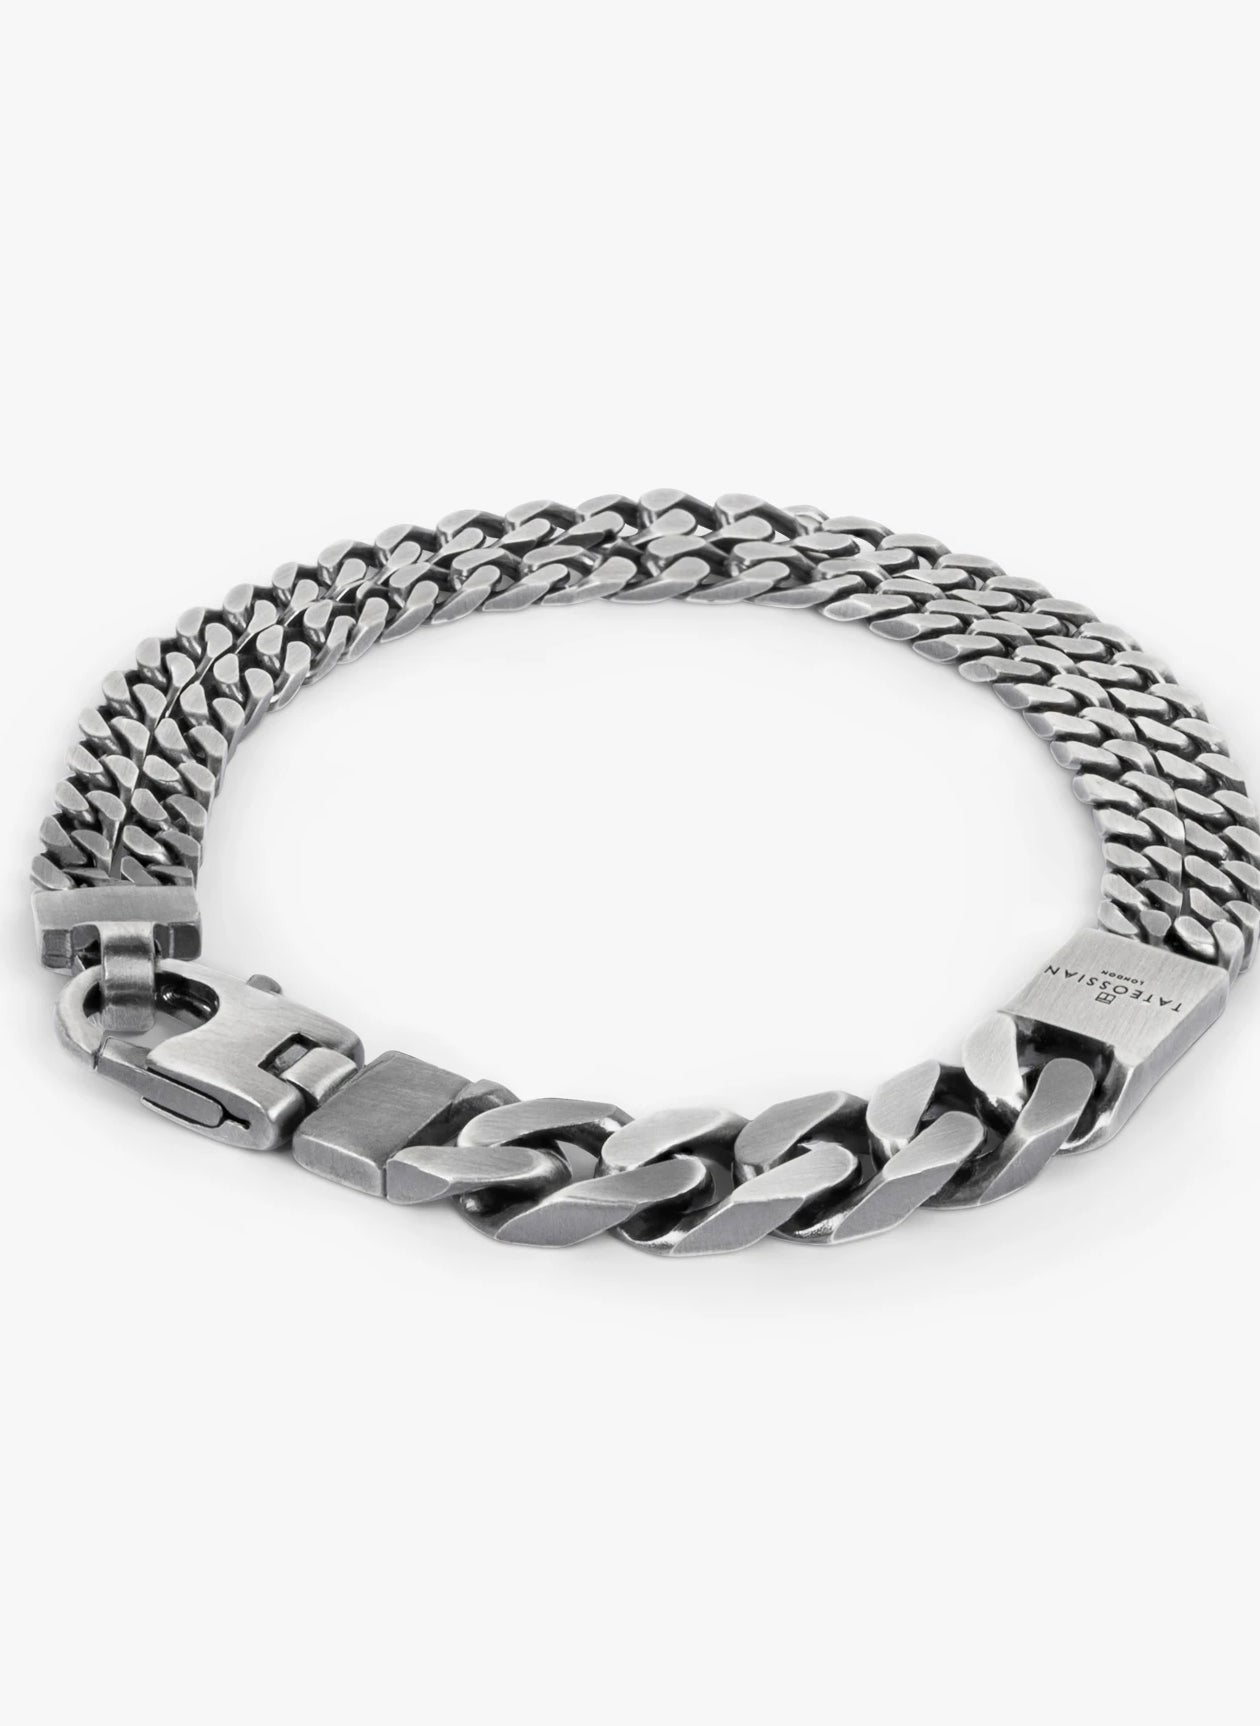 GRUMETTE DUO SLIM BRACELET IN OXIDISED STERLING SILVER